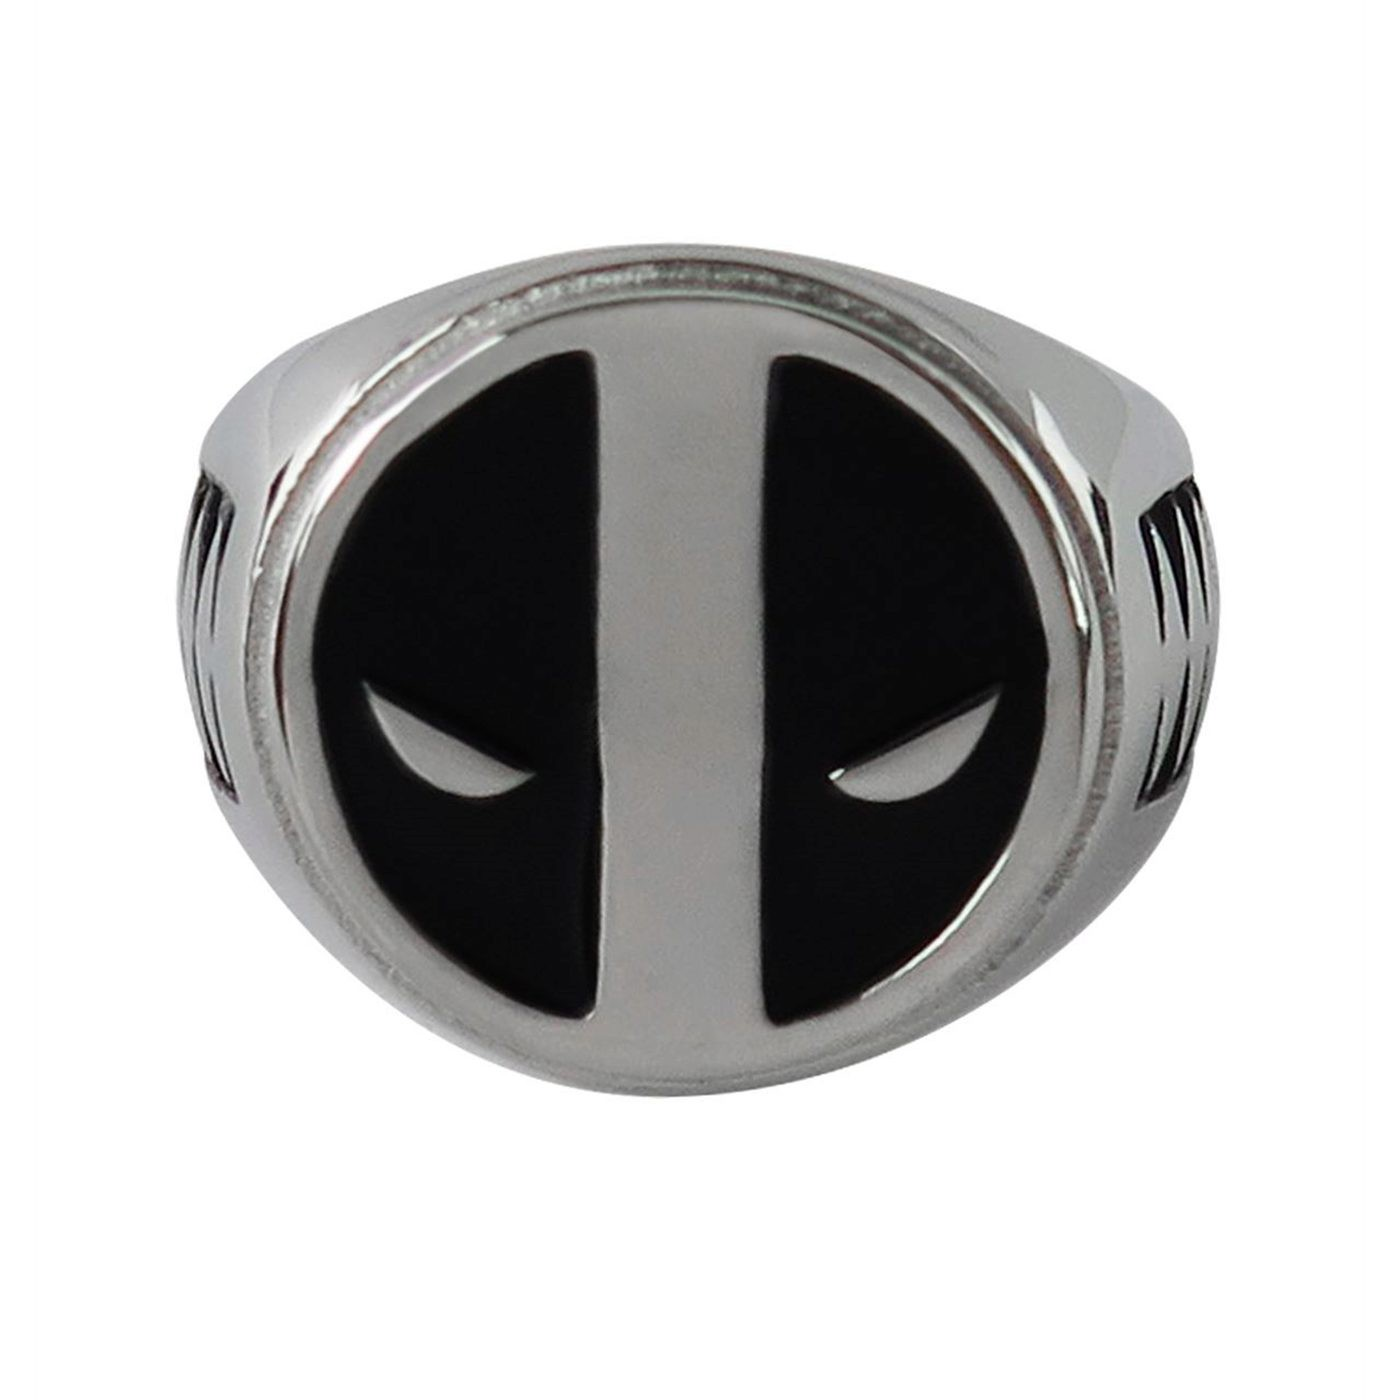 Deadpool Black Symbol Stainless Steel Plated Ring